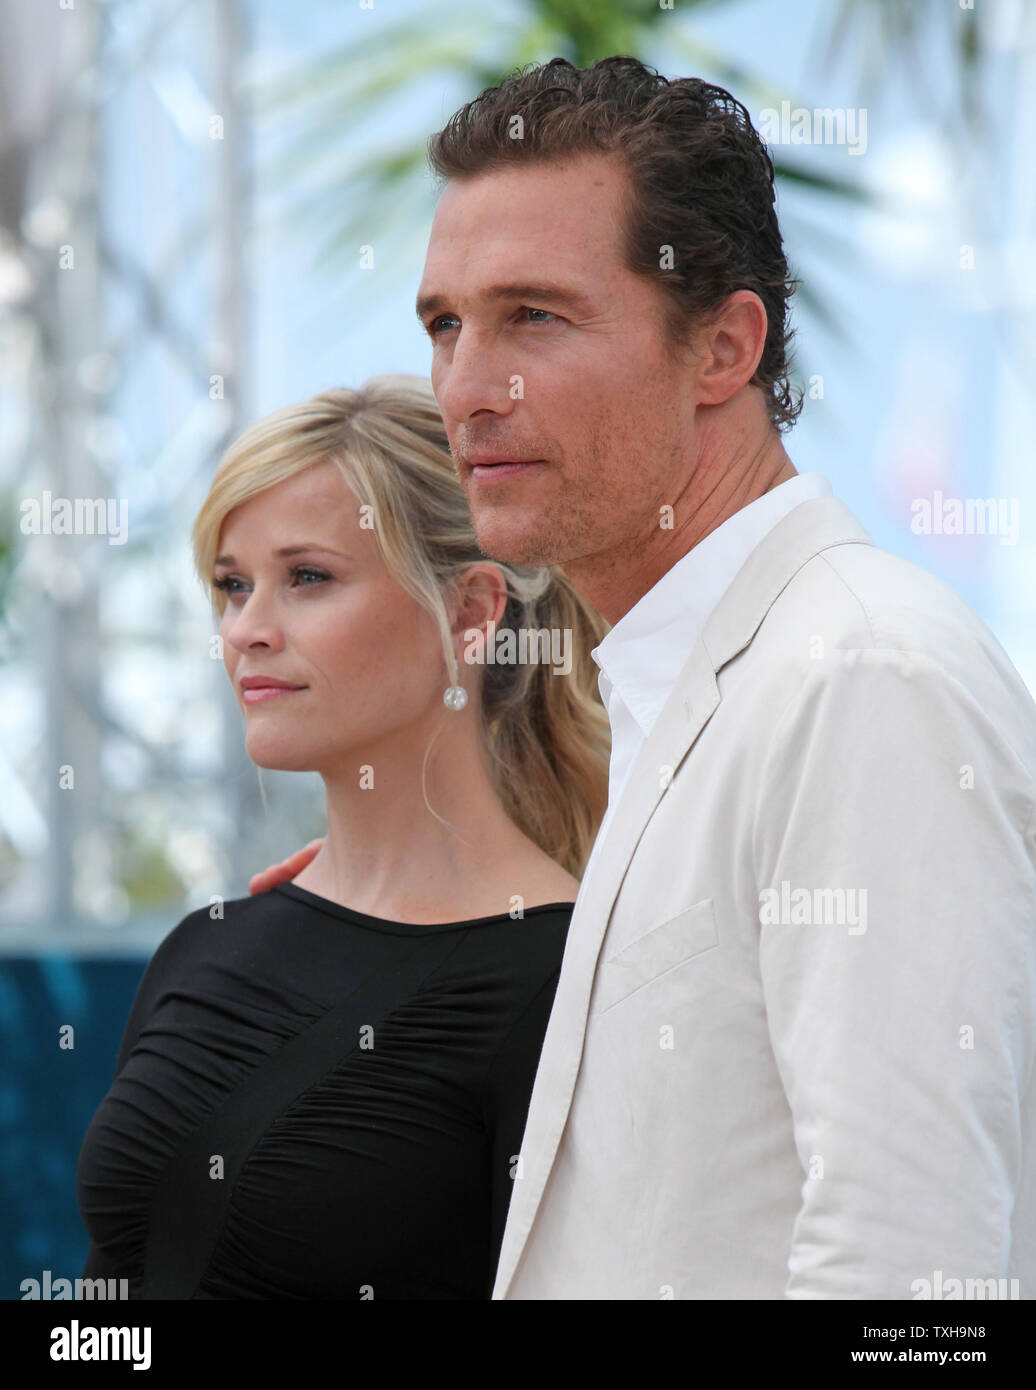 reese witherspoon dating 2012